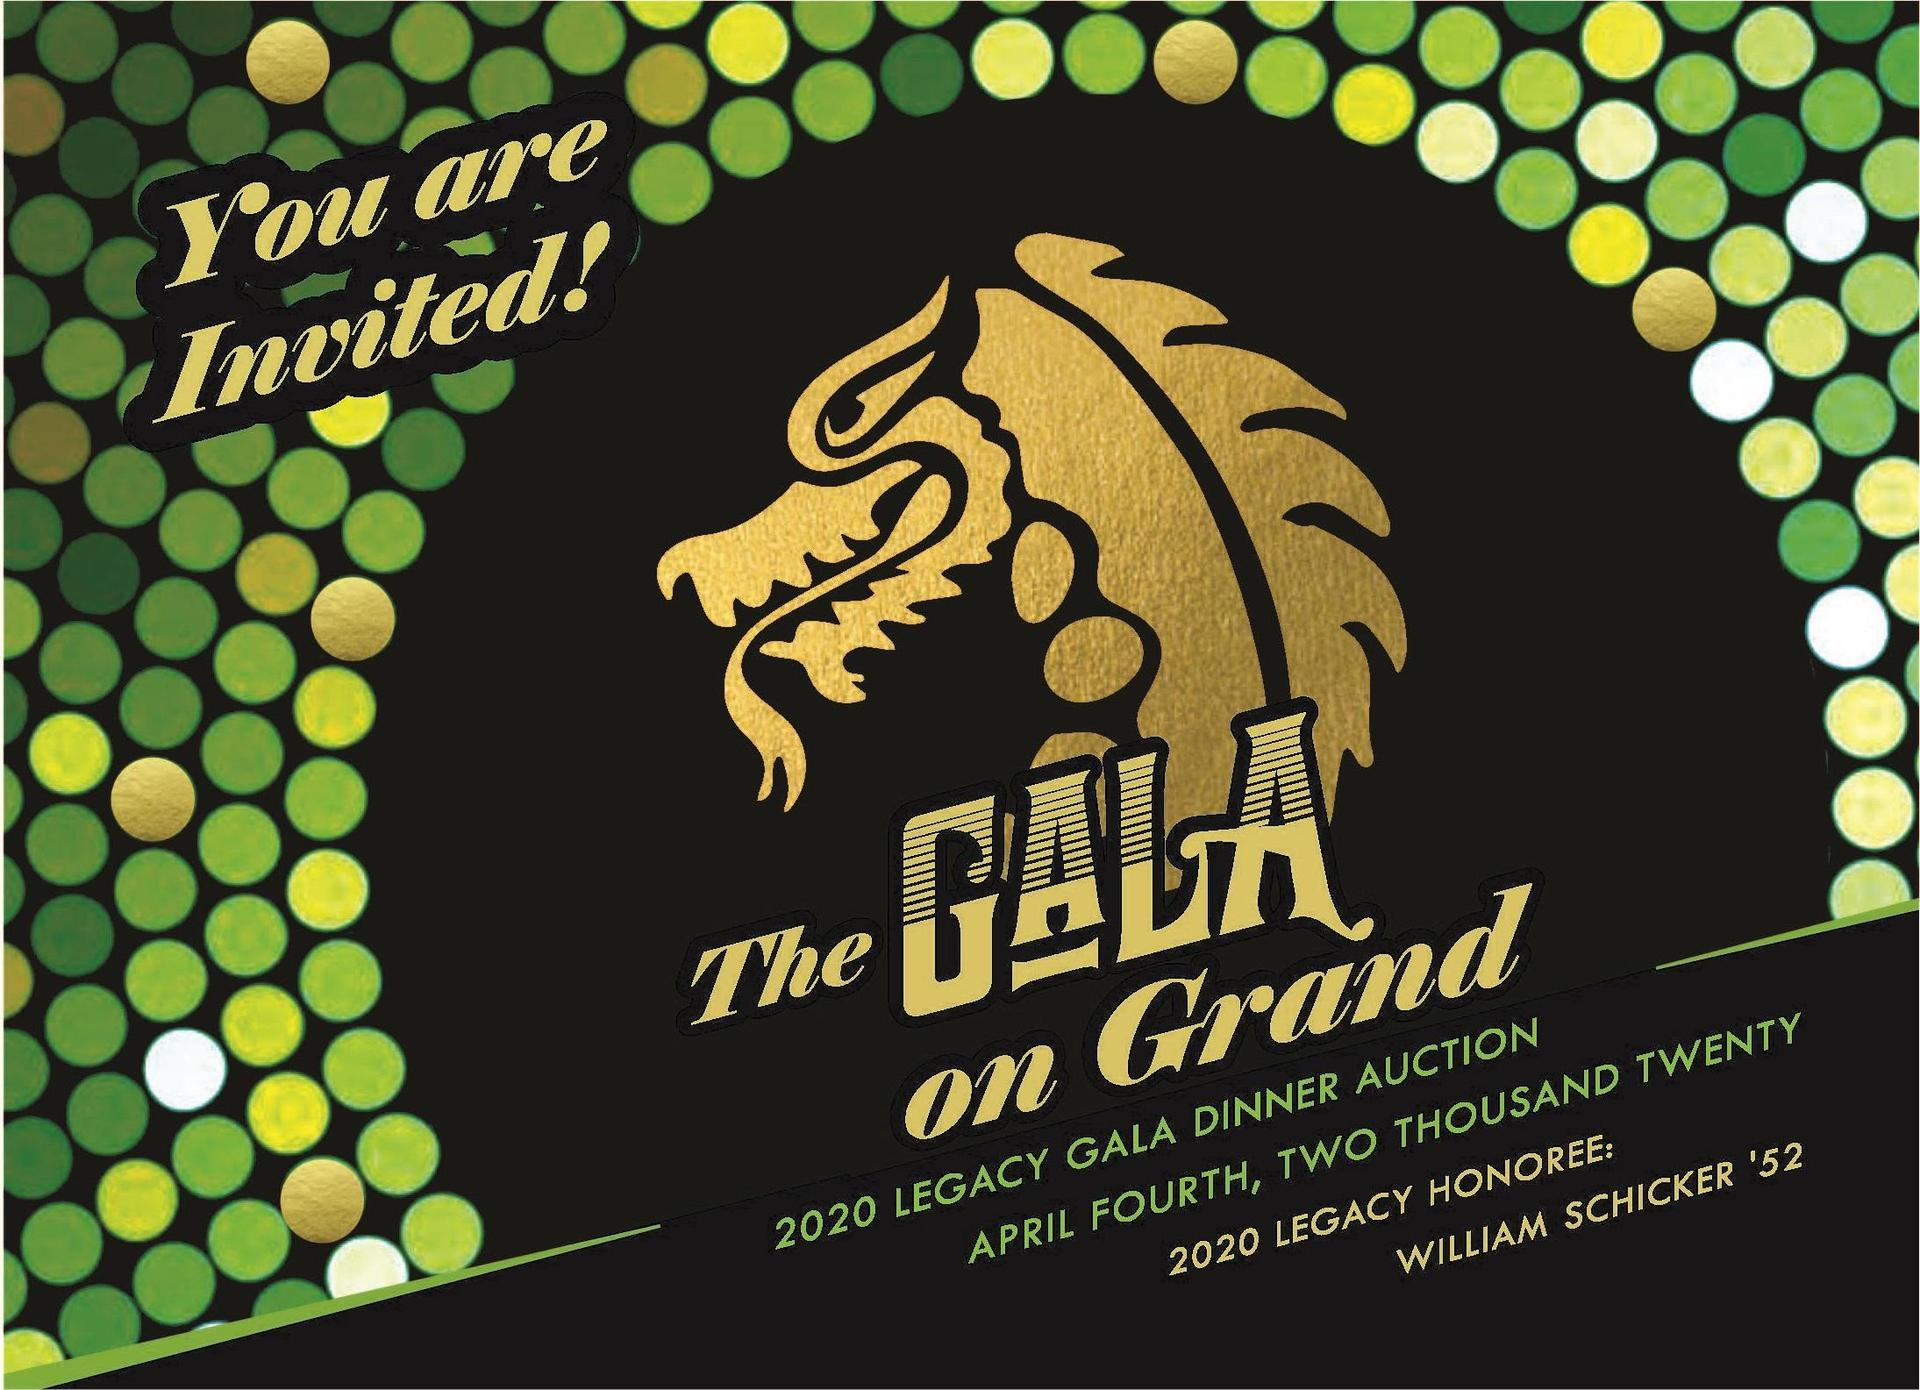 You are invited to the 2020 Legacy Gala Dinner Auction!